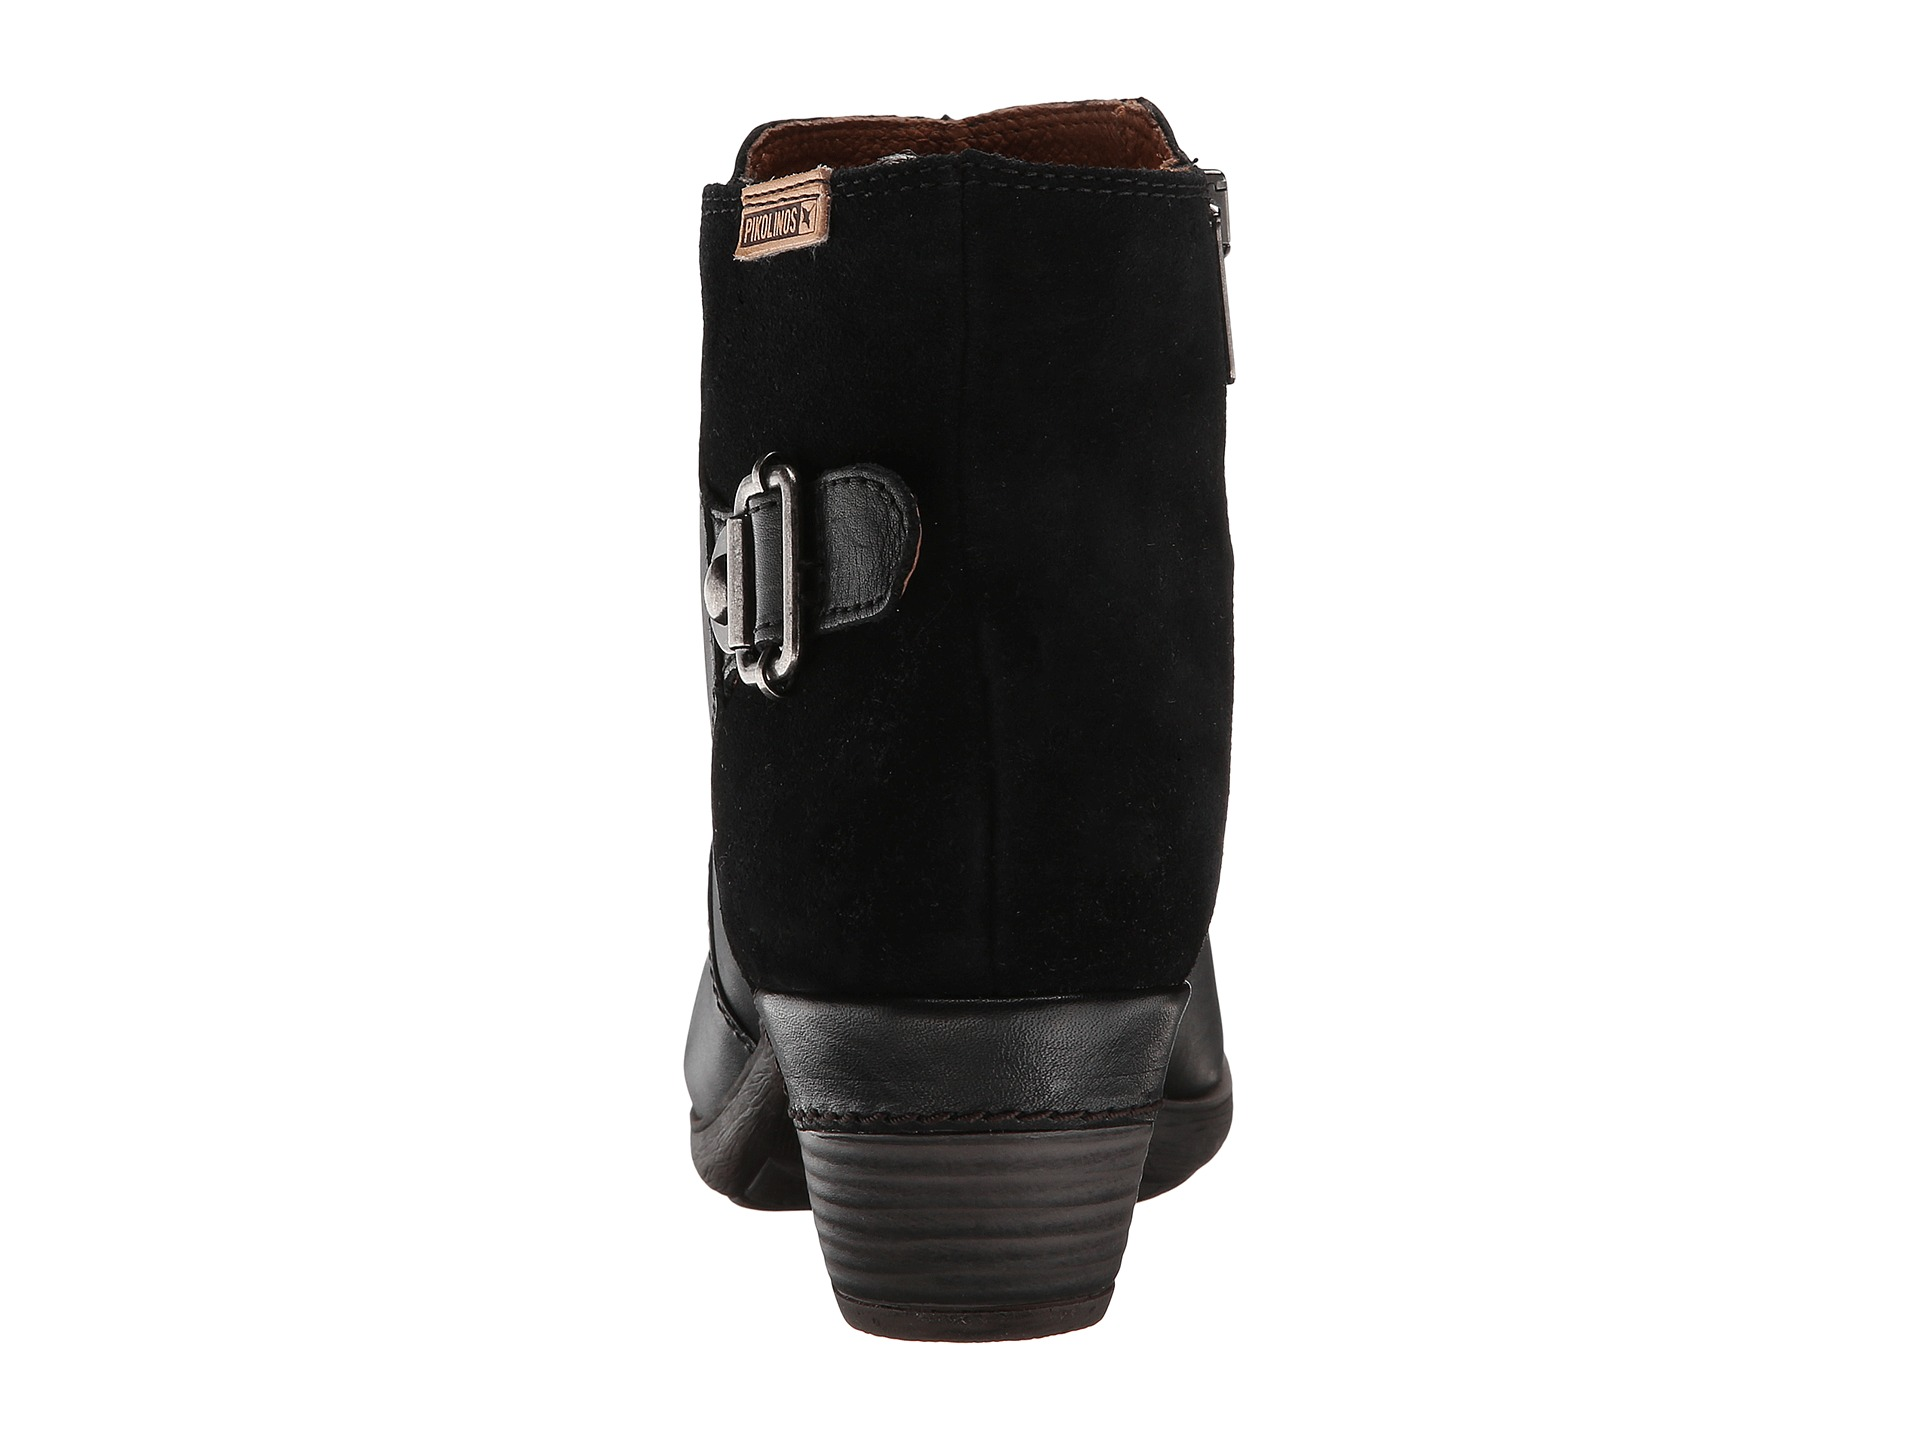 Zappos Boots For Men Images Shorts